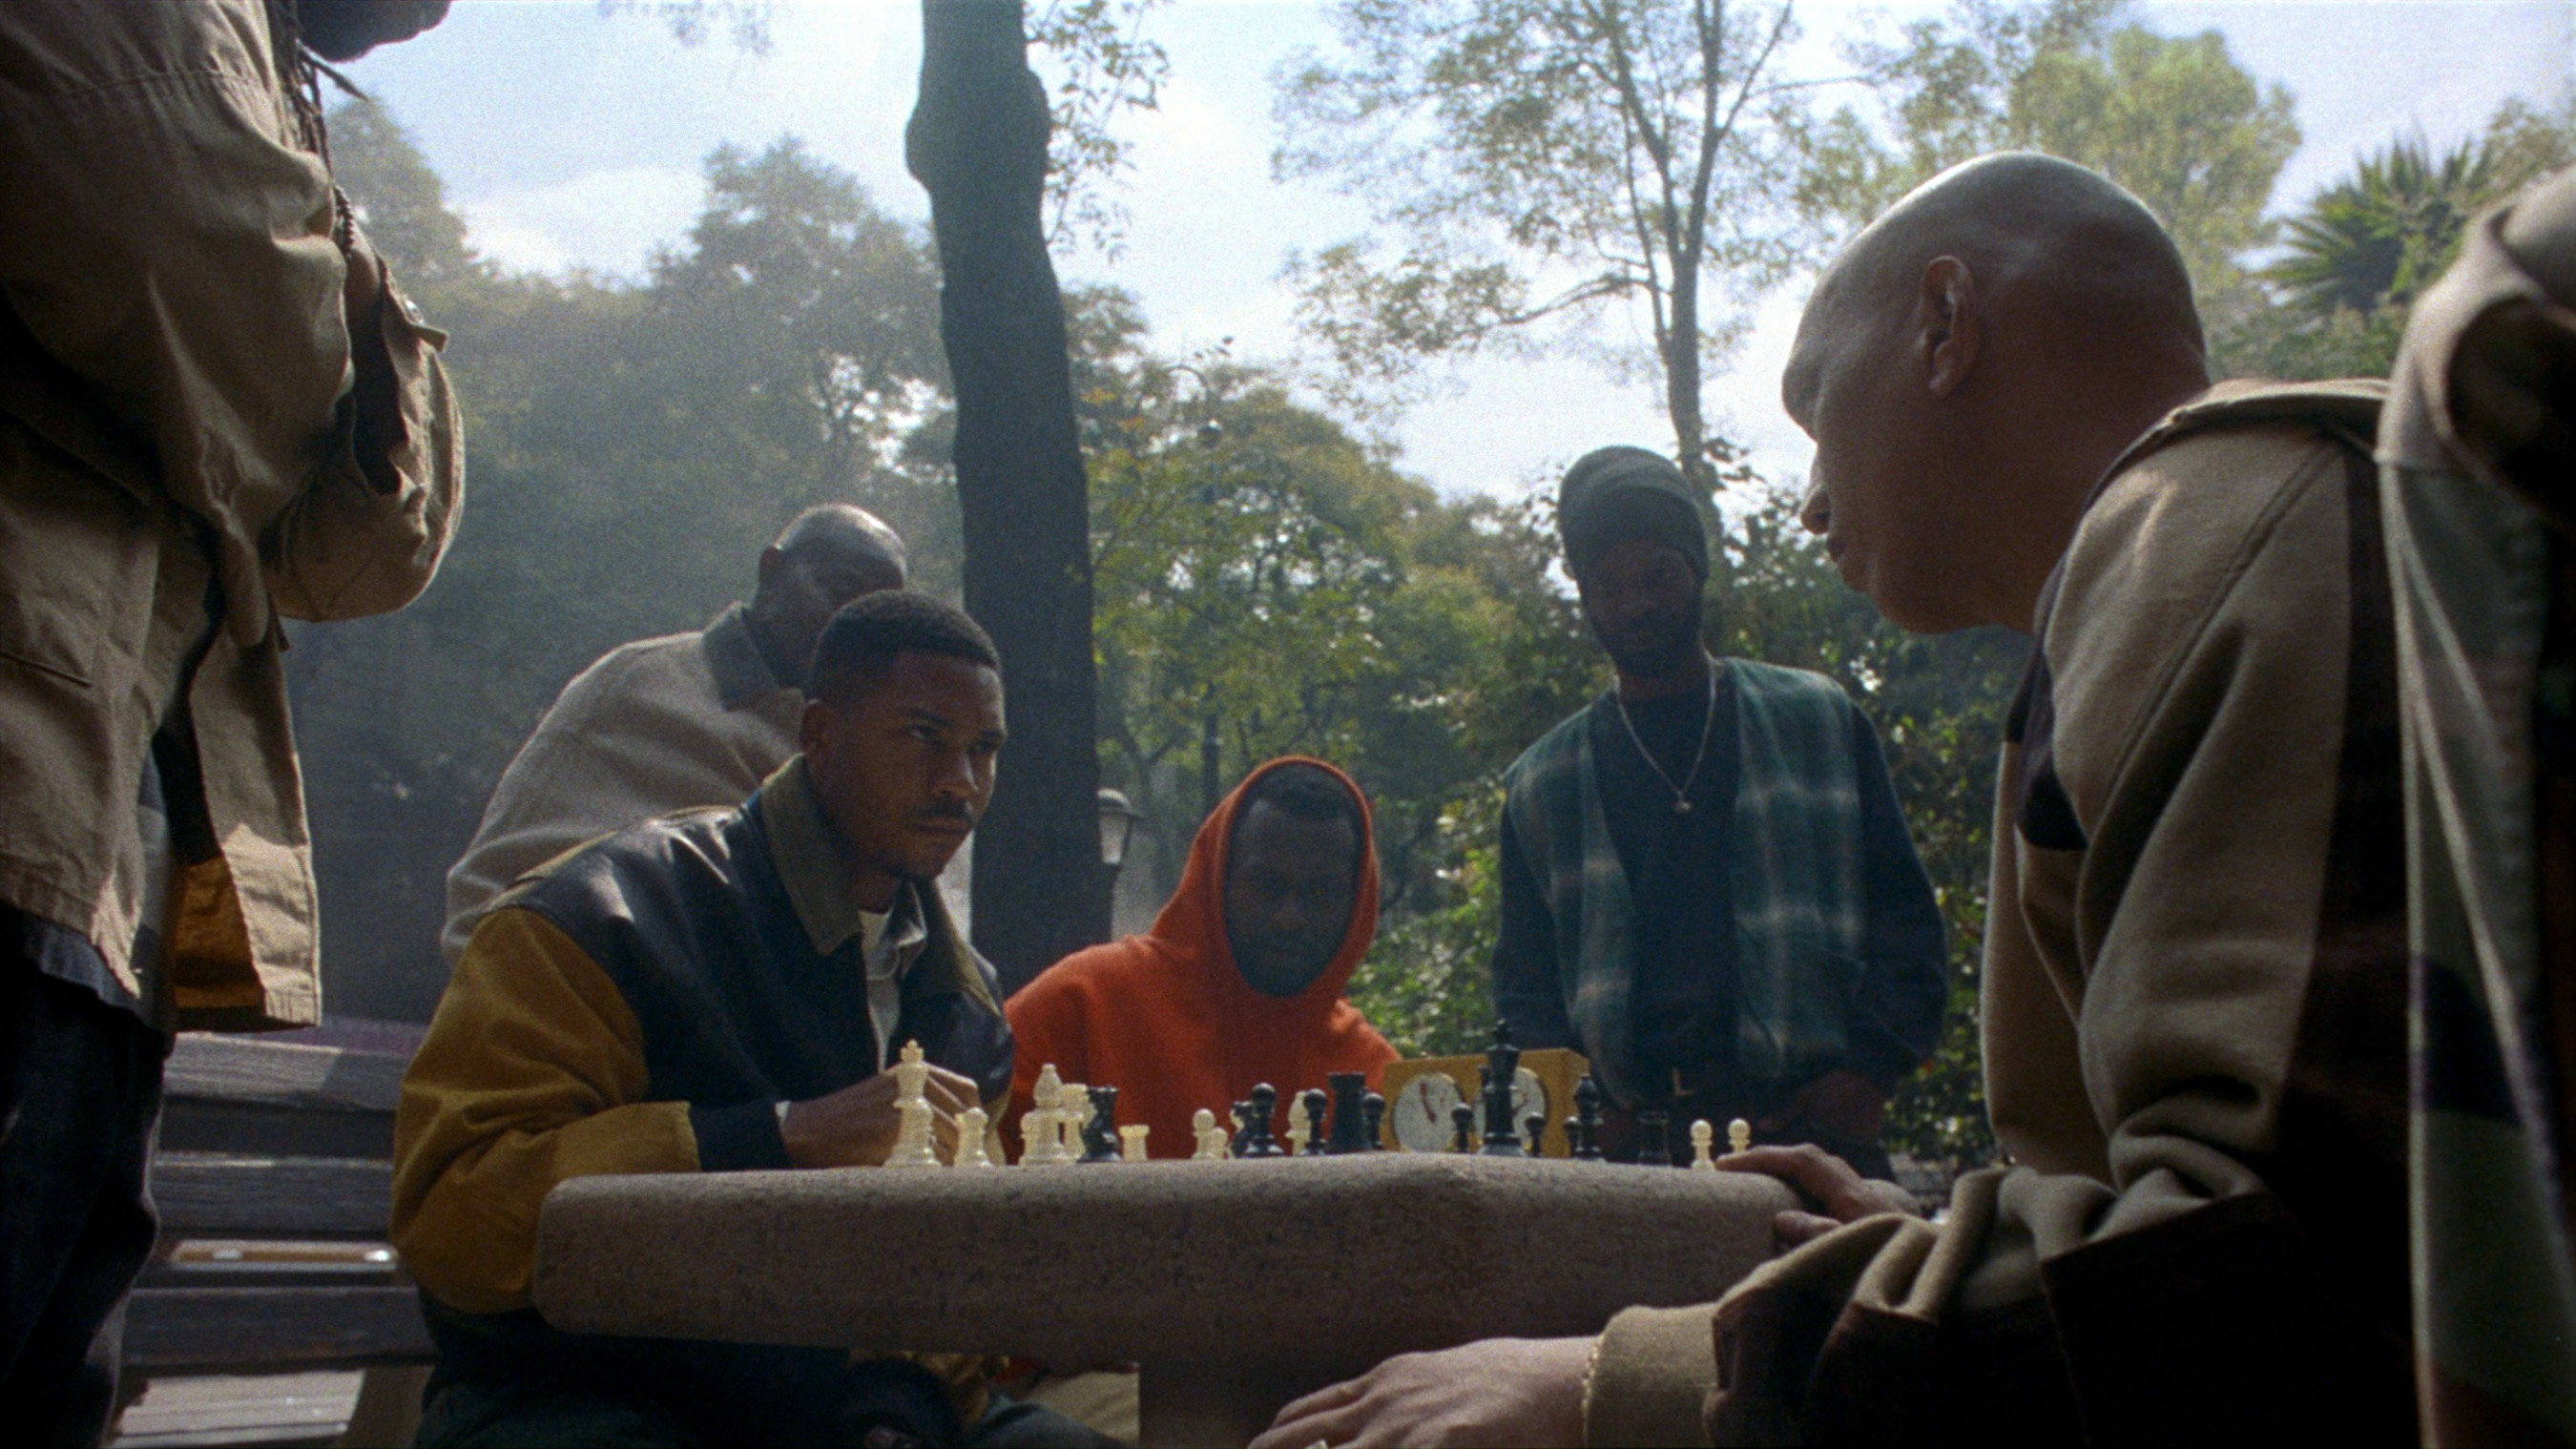 Maurice studied chess under the tutelage of NYC's 'Black Bear School of Chess', a group of accomplished local players who congregated in Prospect Park in the 1990s.